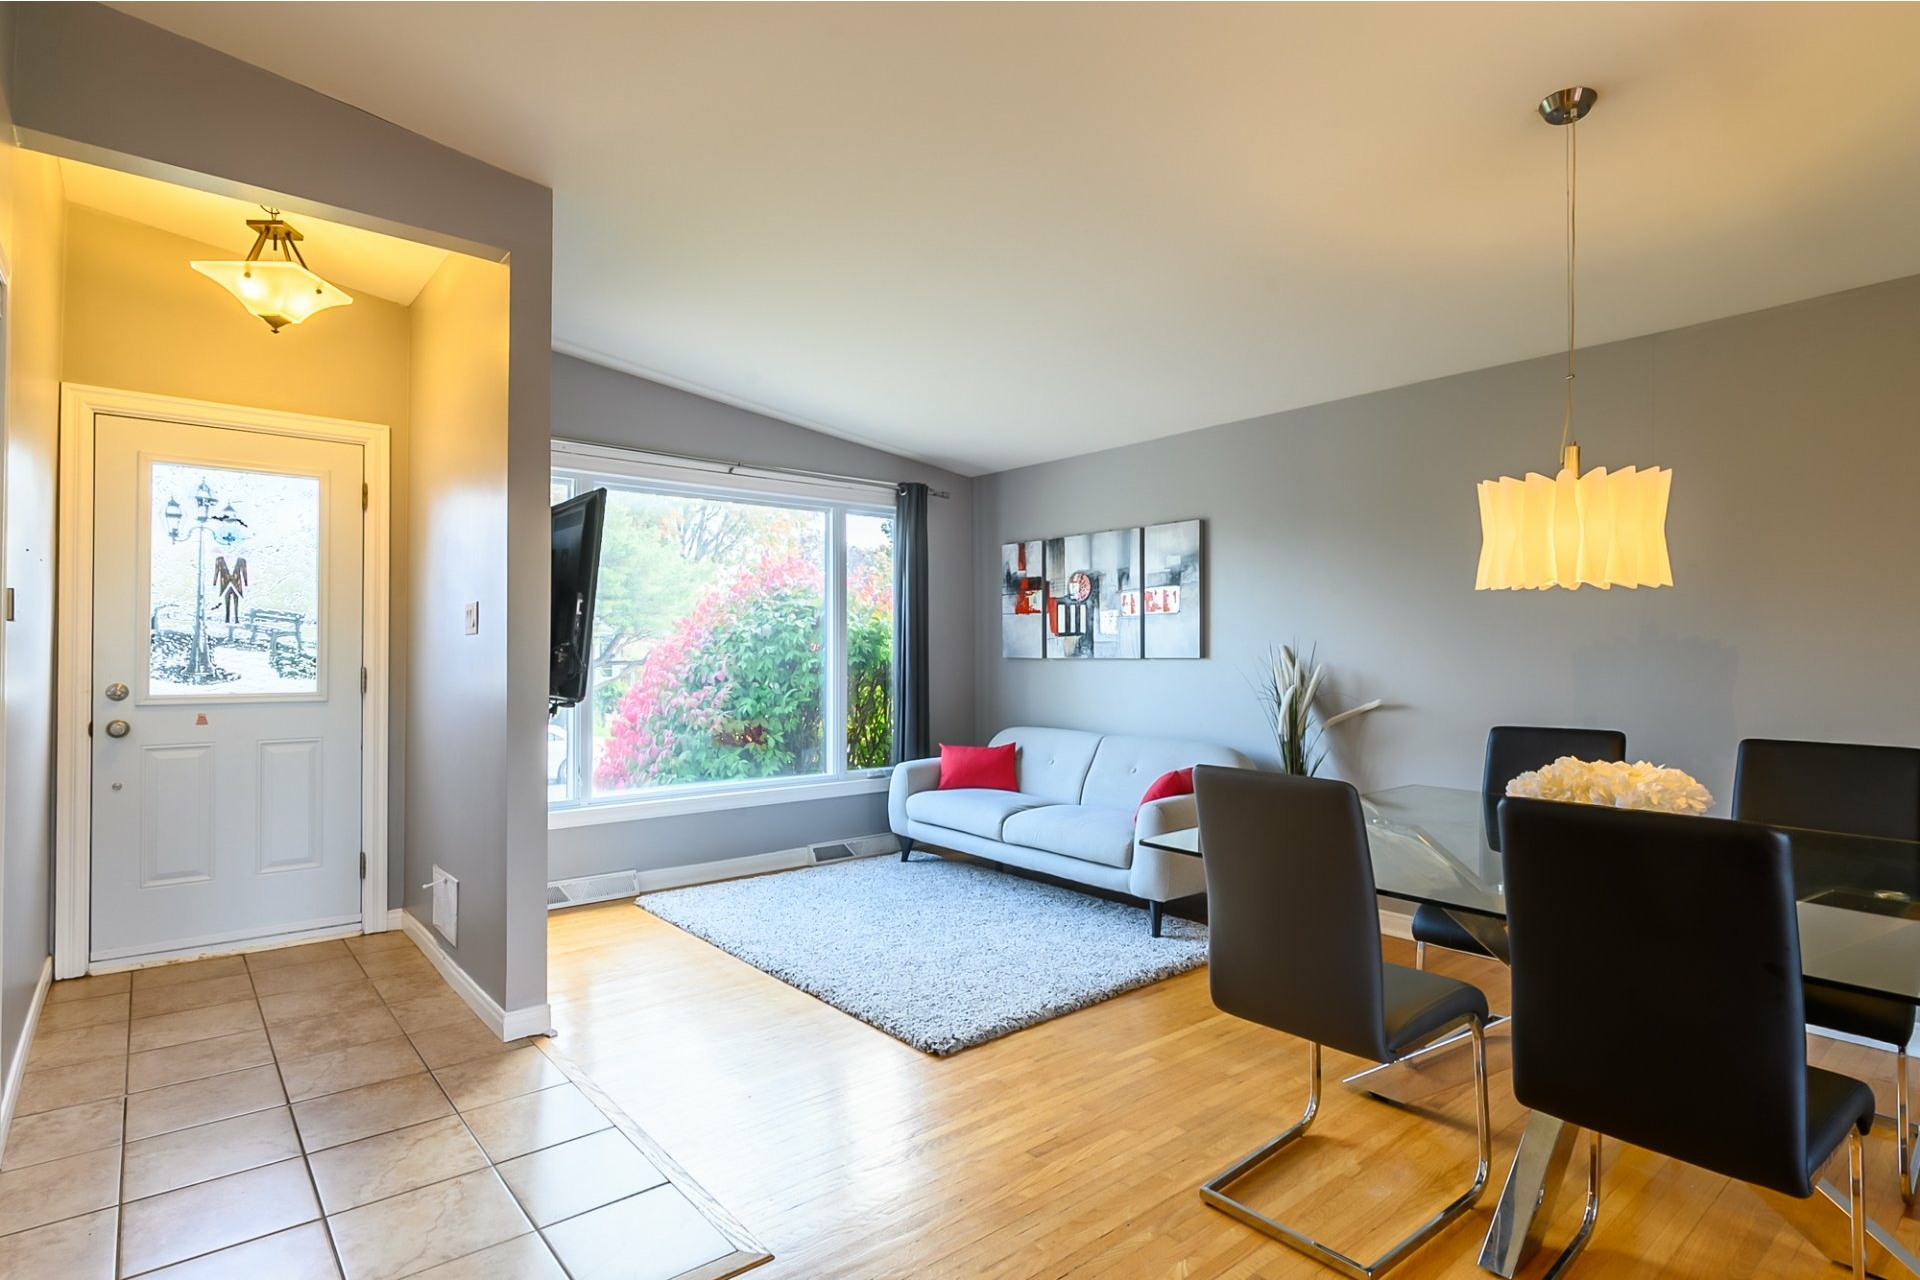 image 4 - House For sale Brossard - 10 rooms